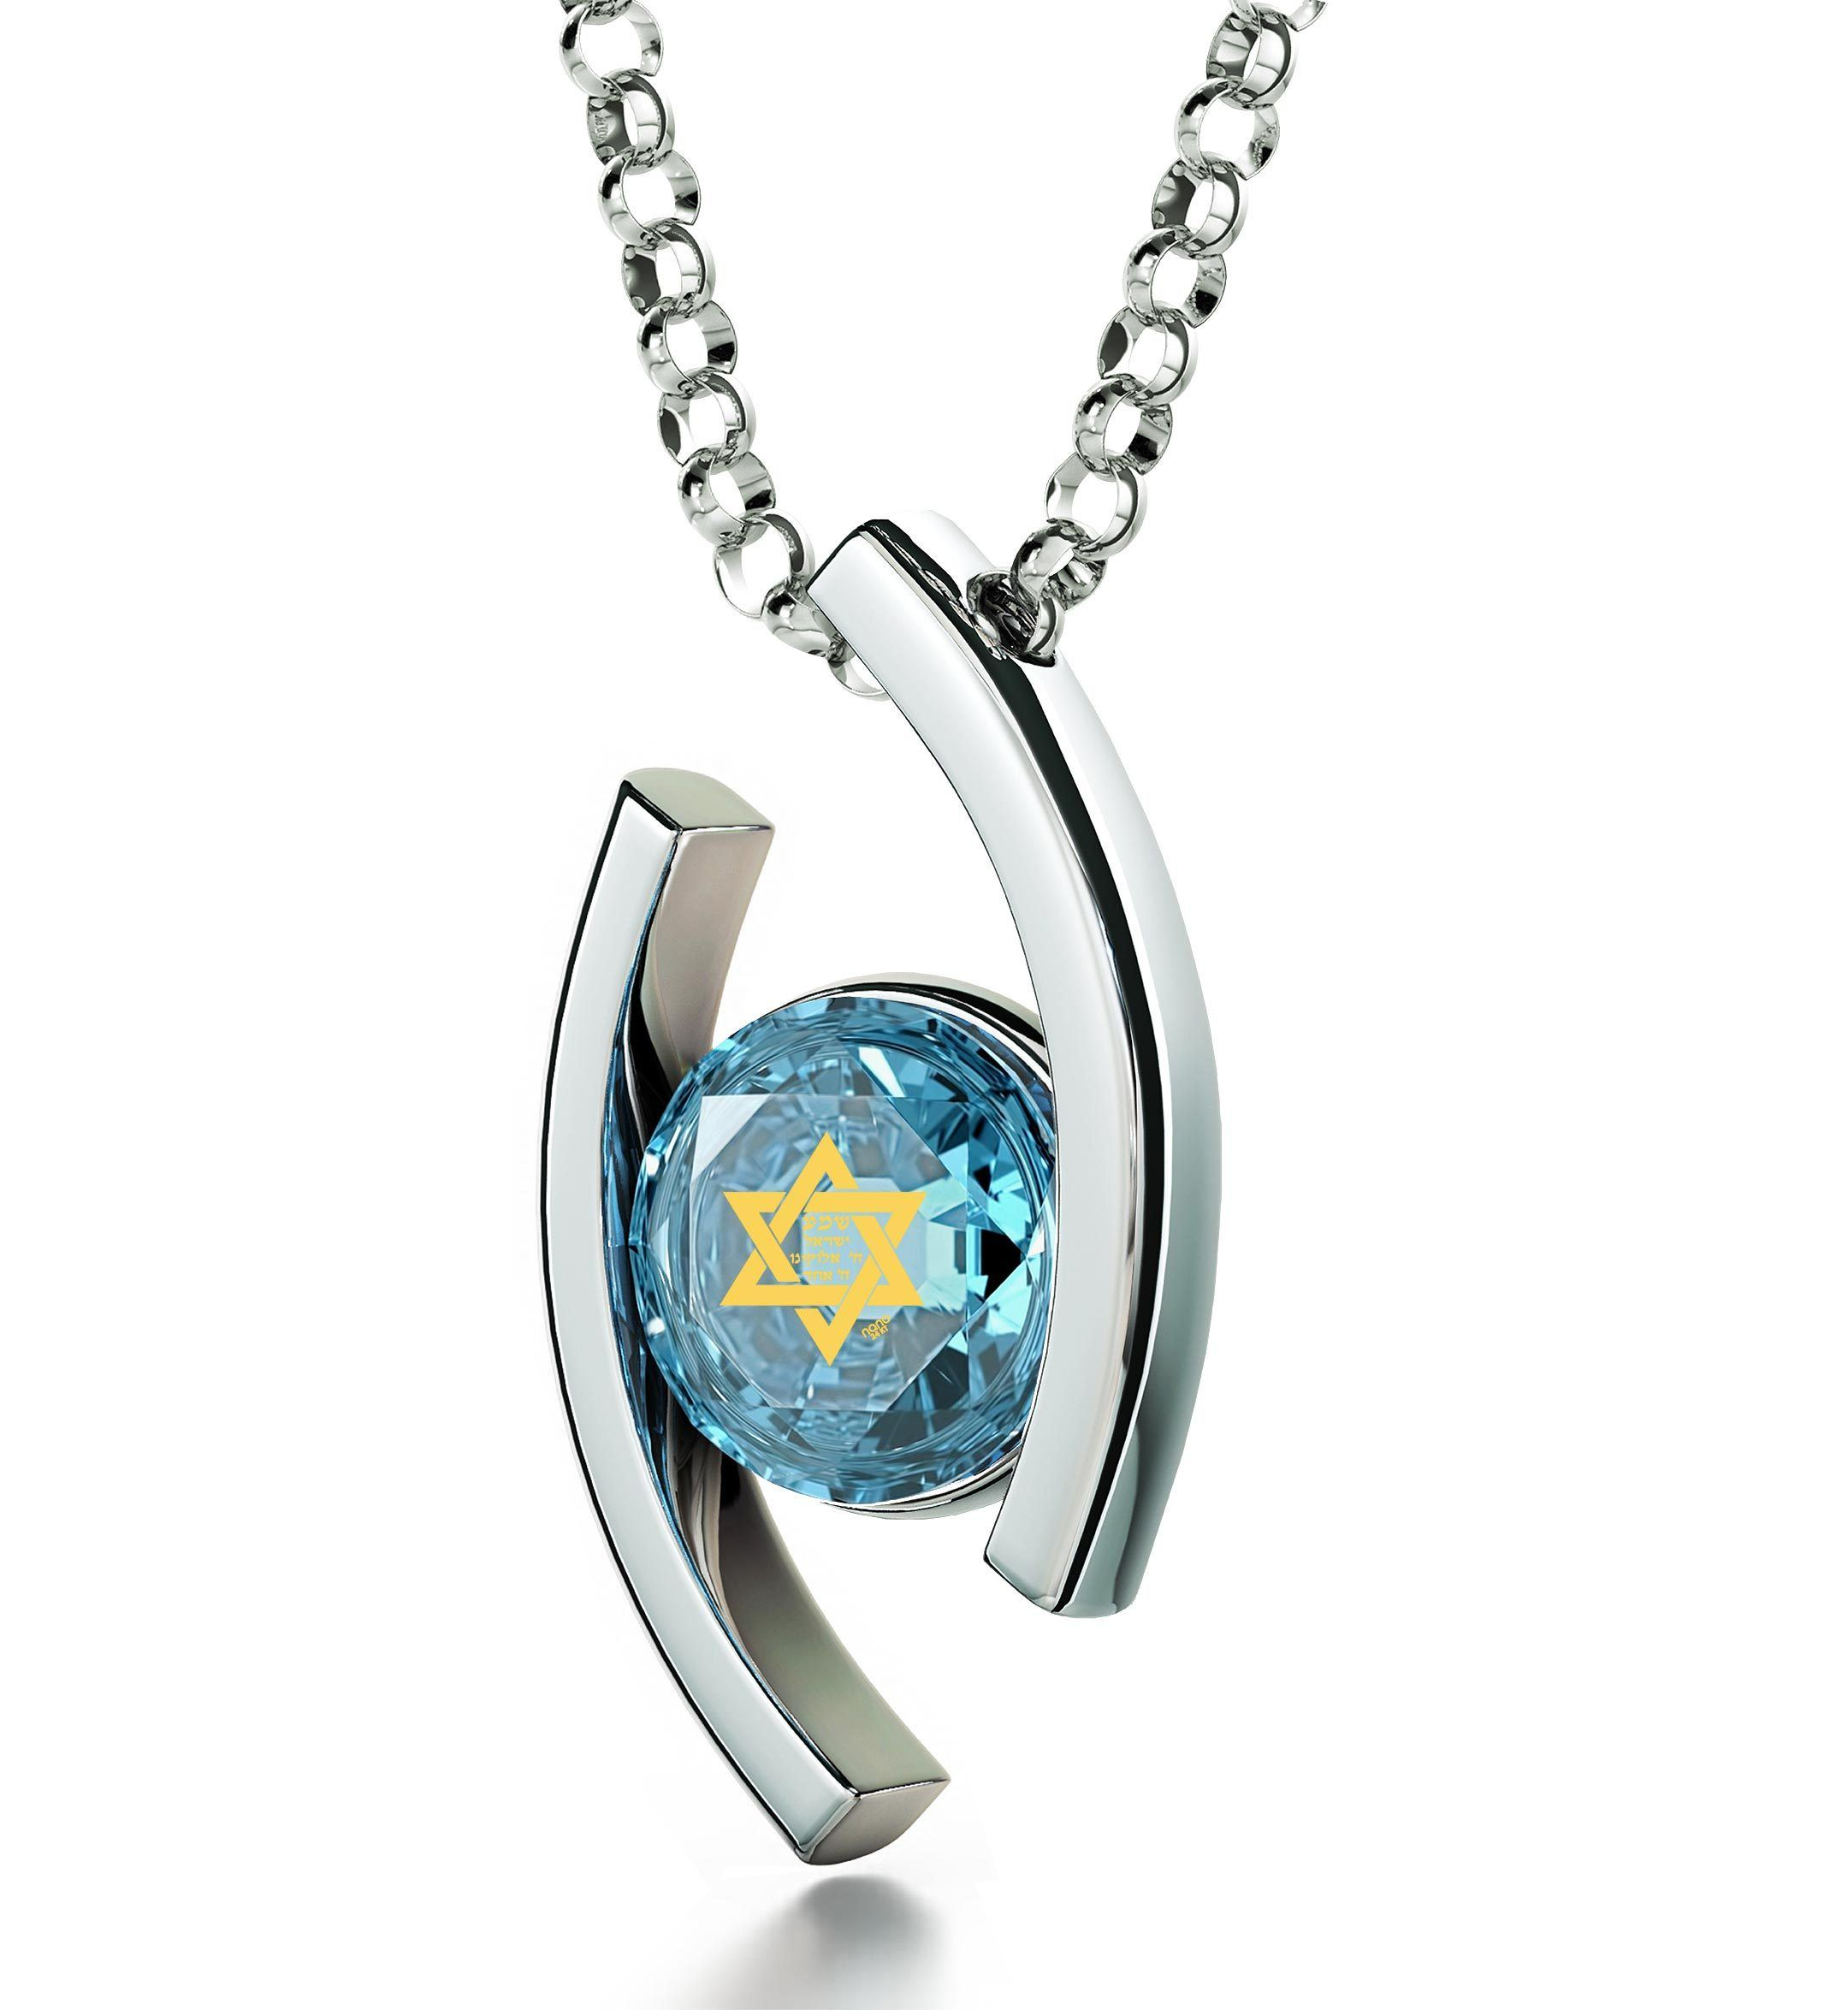 """Shema Yisrael"" Engraved in 24k, Israeli Jewelry with Swarovski Aqumarine Stone, Judaica Gifts, Religious Necklaces"